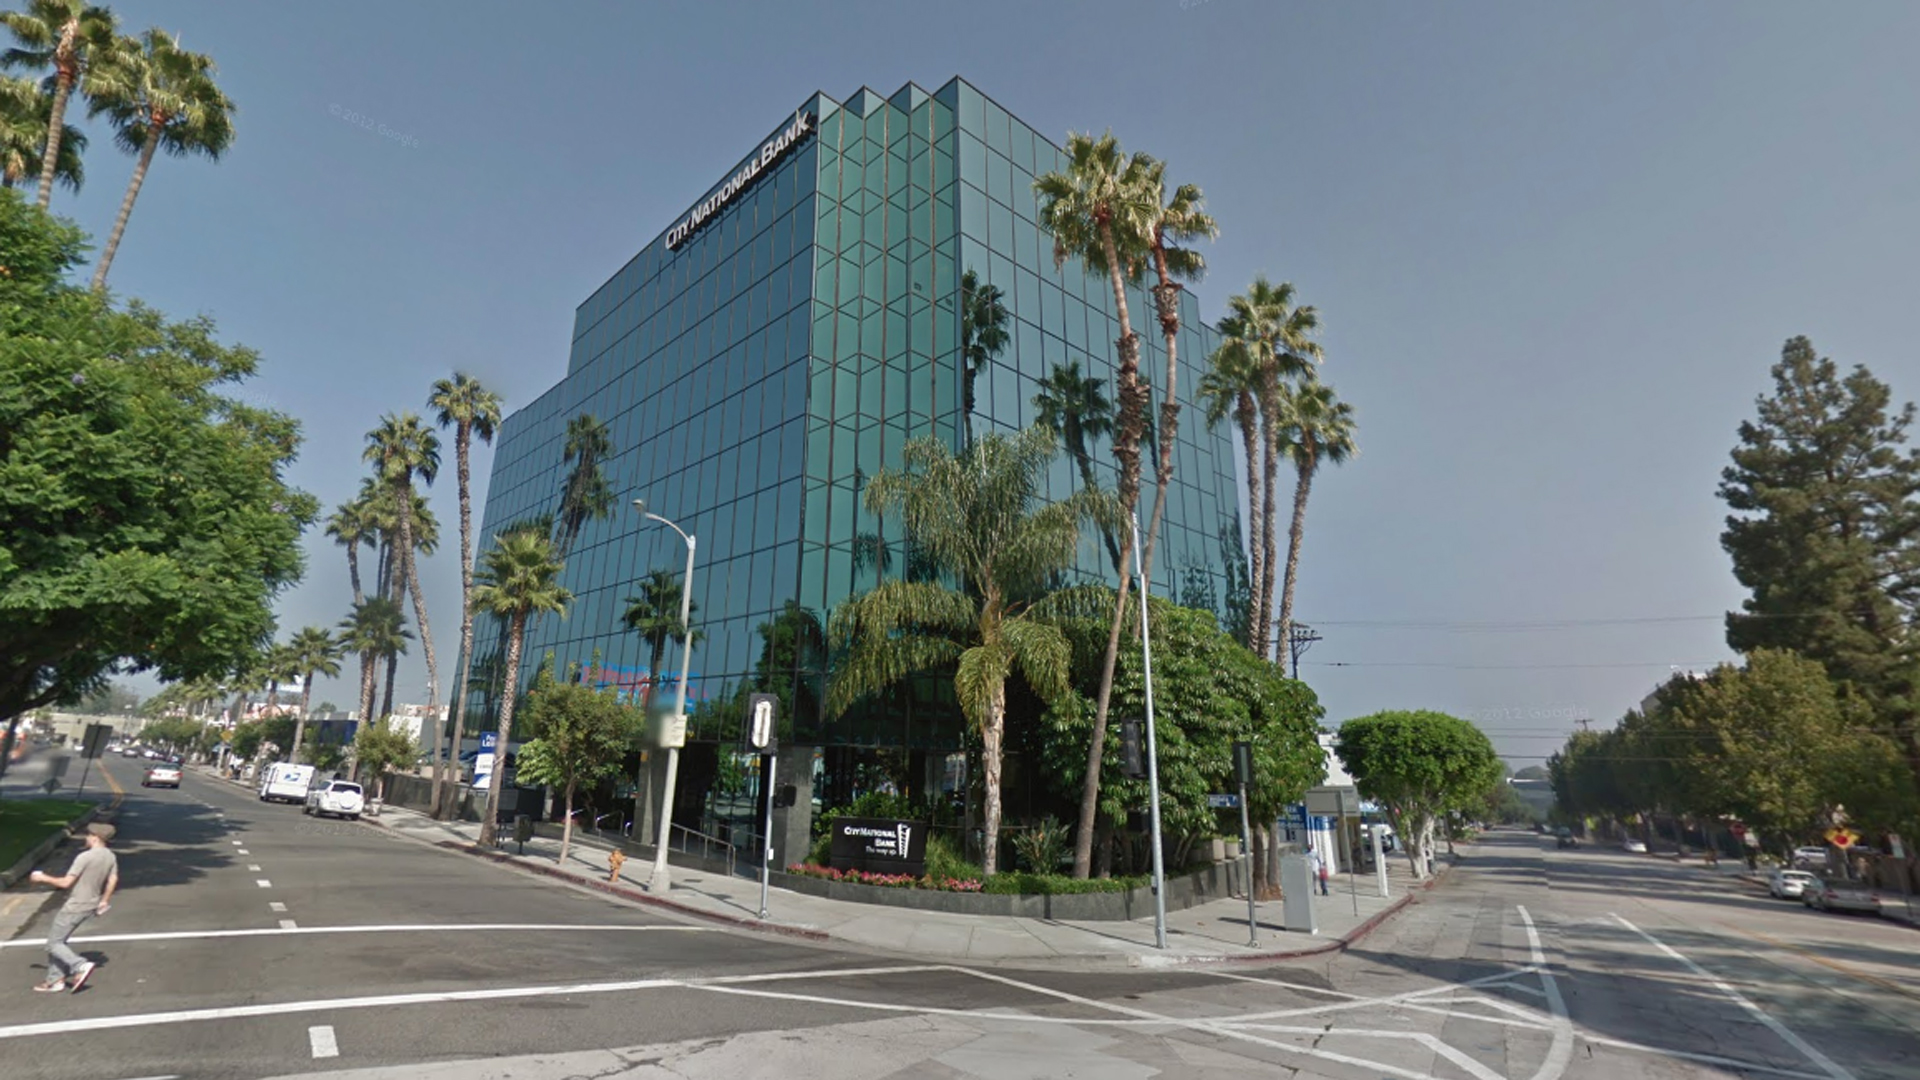 The building housing the CBS Employees Federal Credit Union at 12001 Ventura Place in Studio City, as seen i a Google Street View image in December of 2018.